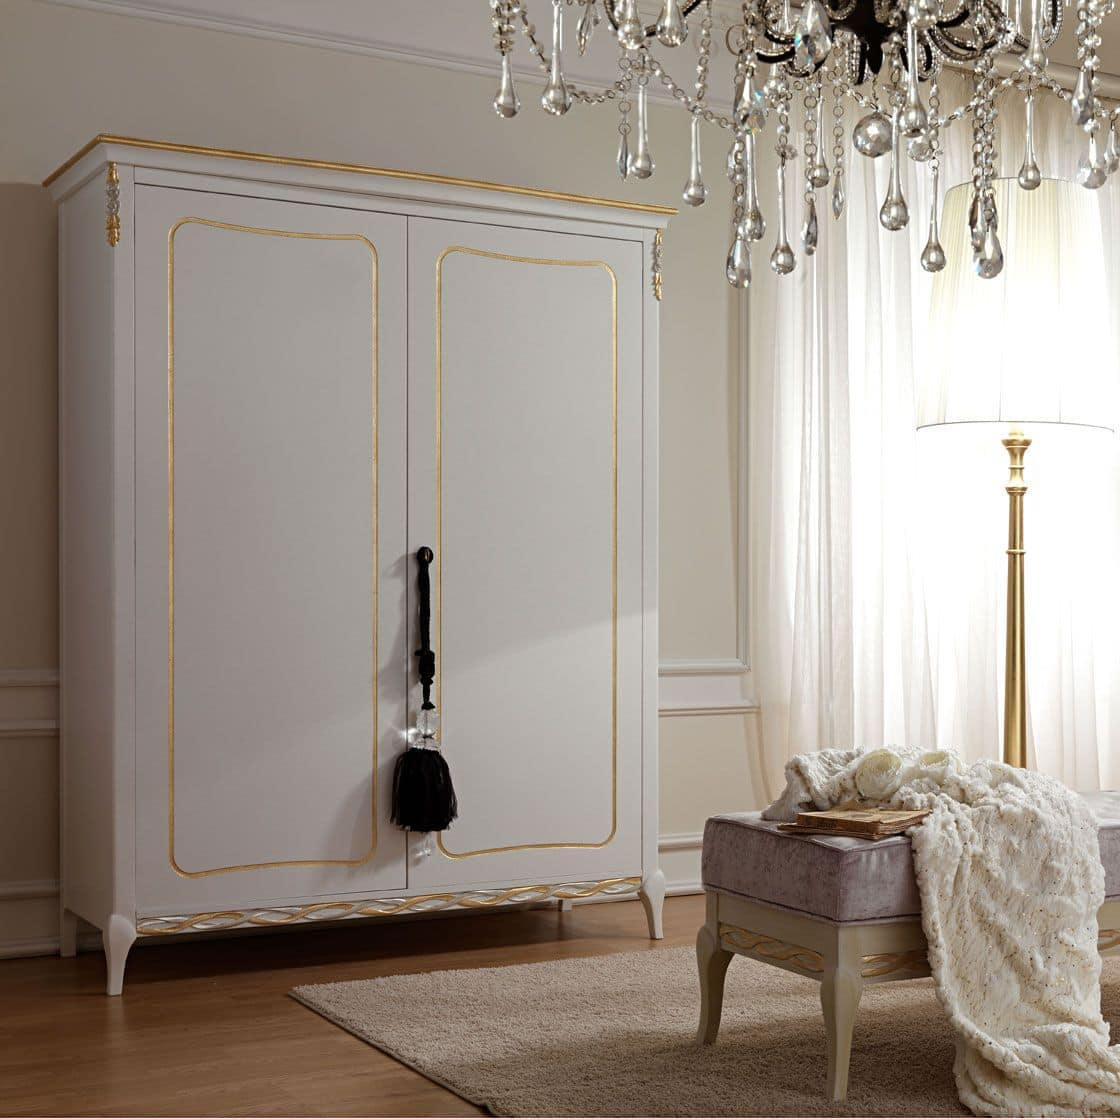 luxus schlafzimmer bilder inspiration. Black Bedroom Furniture Sets. Home Design Ideas